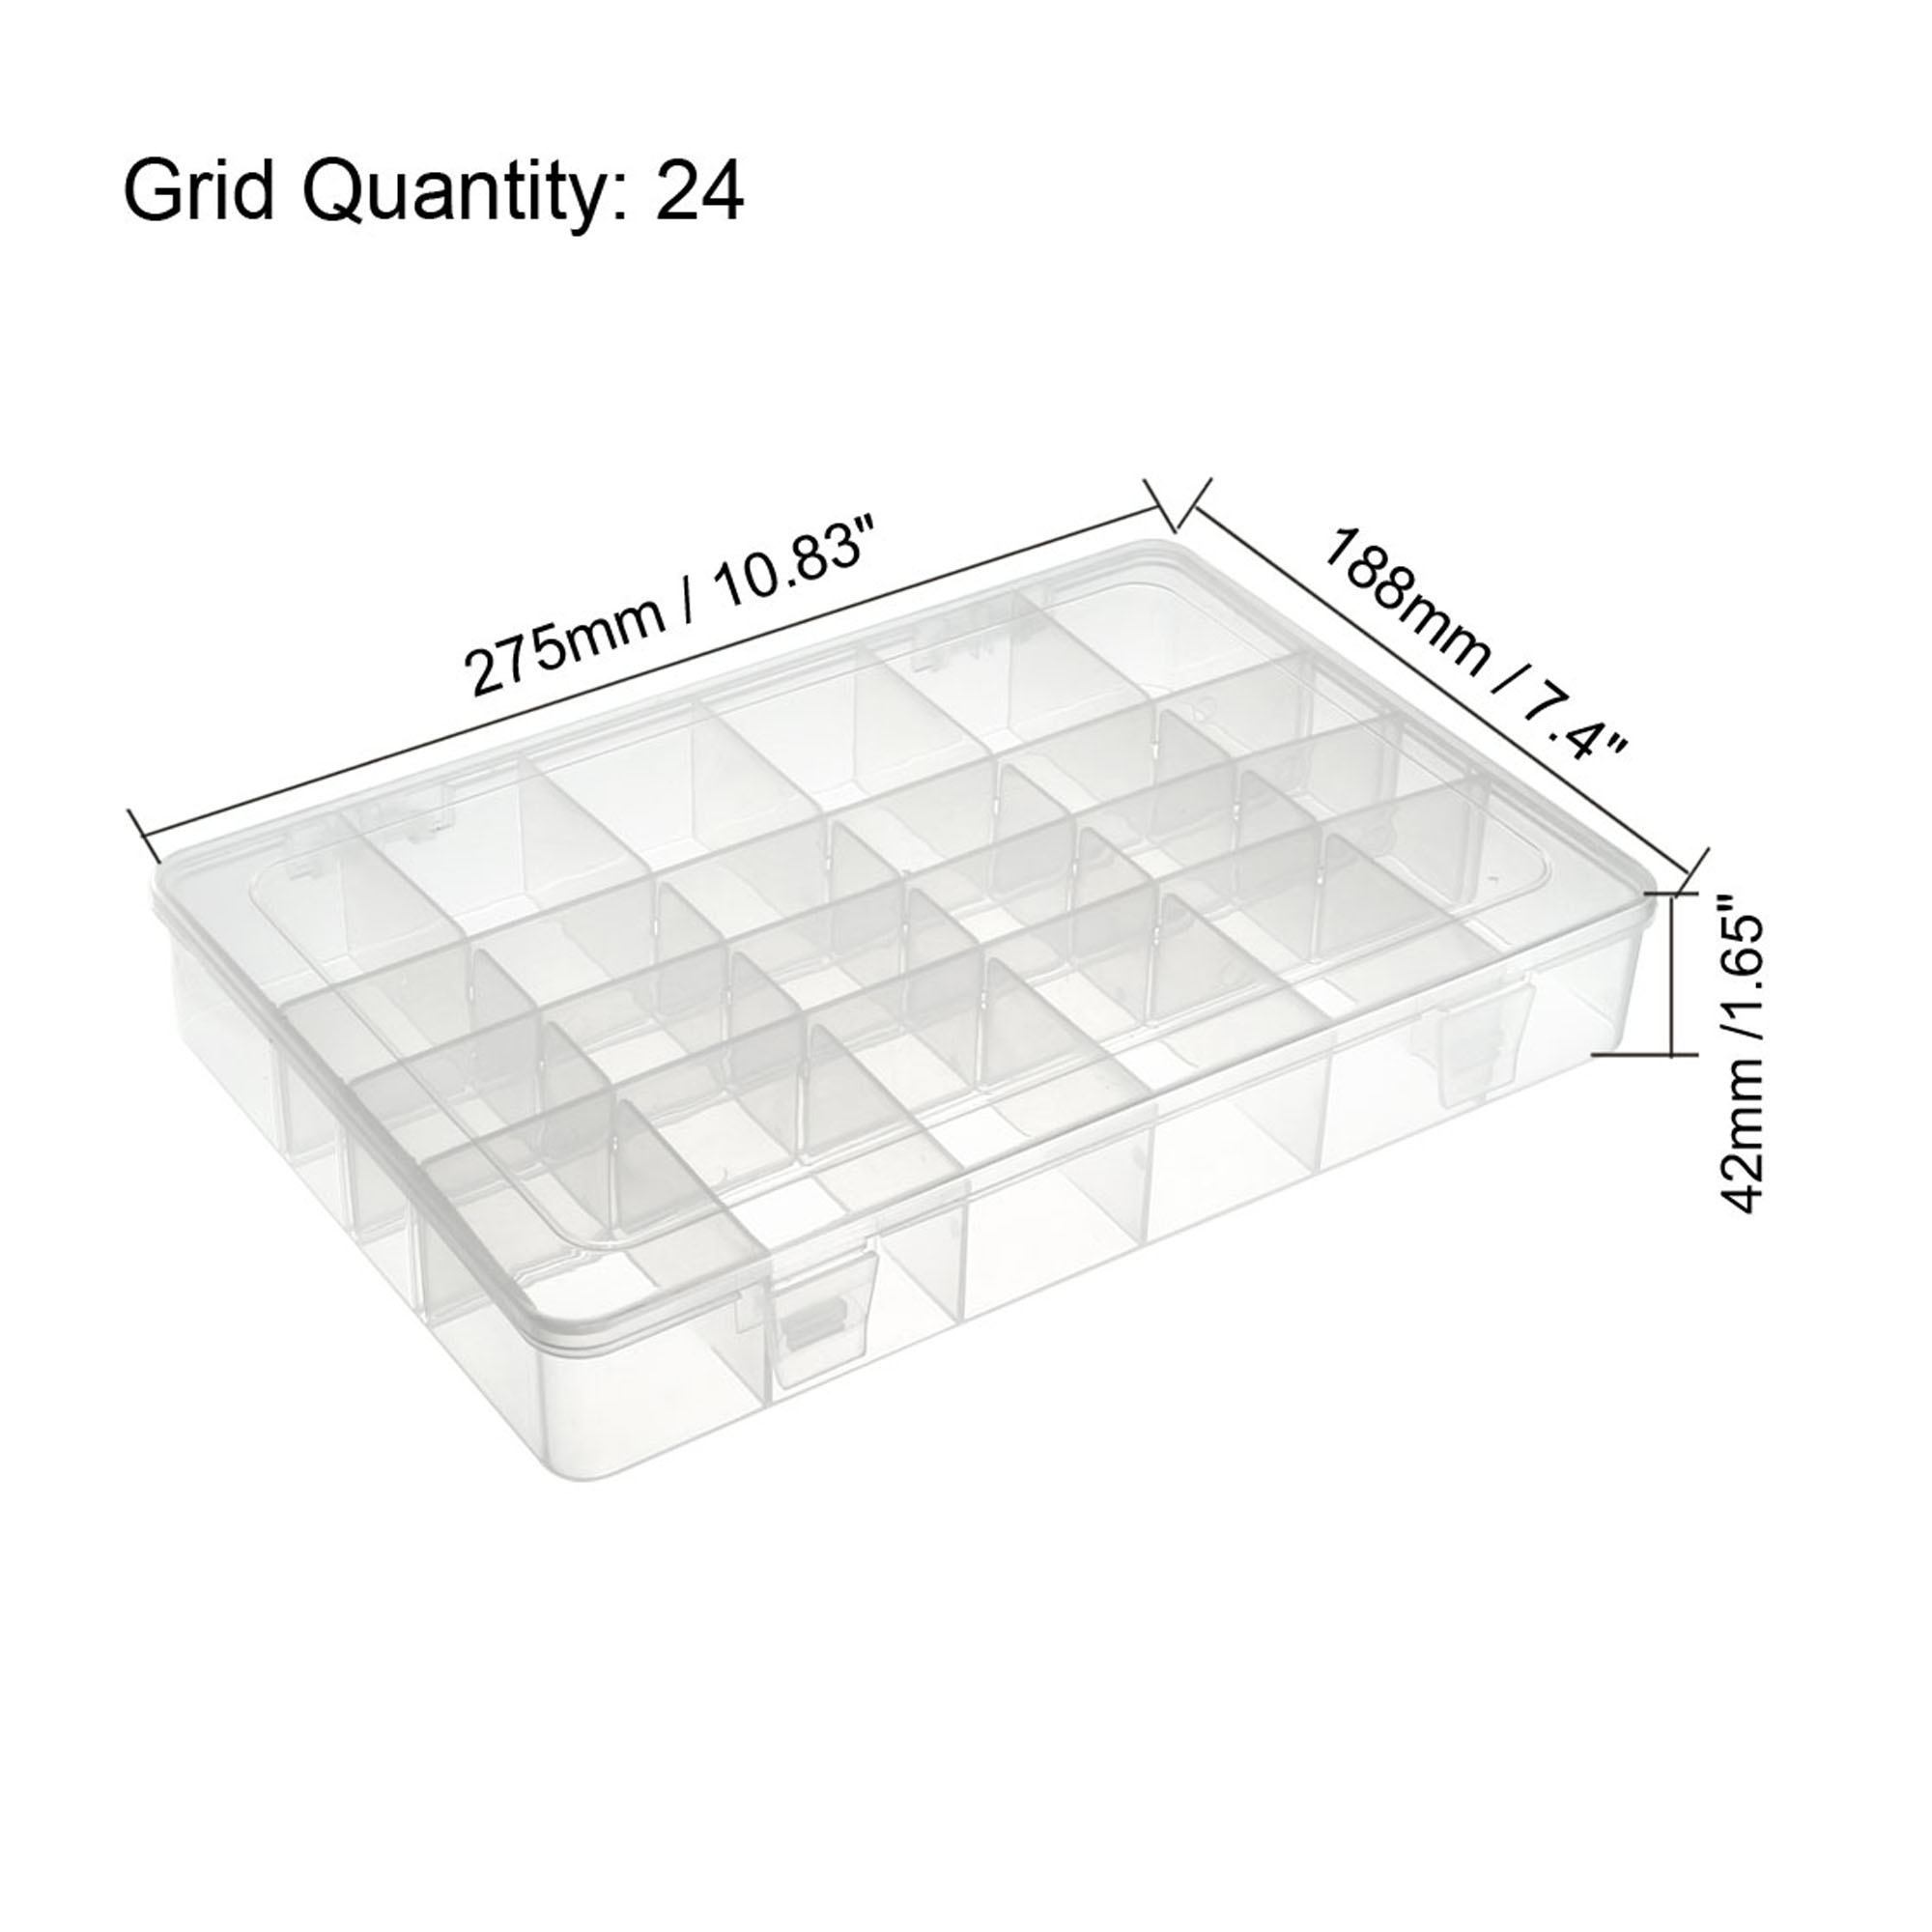 Component Storage Box - PP Adjustable 24 Grids Electronic Component Containers Tool Boxes Clear White 275x188x42mm - image 1 of 4